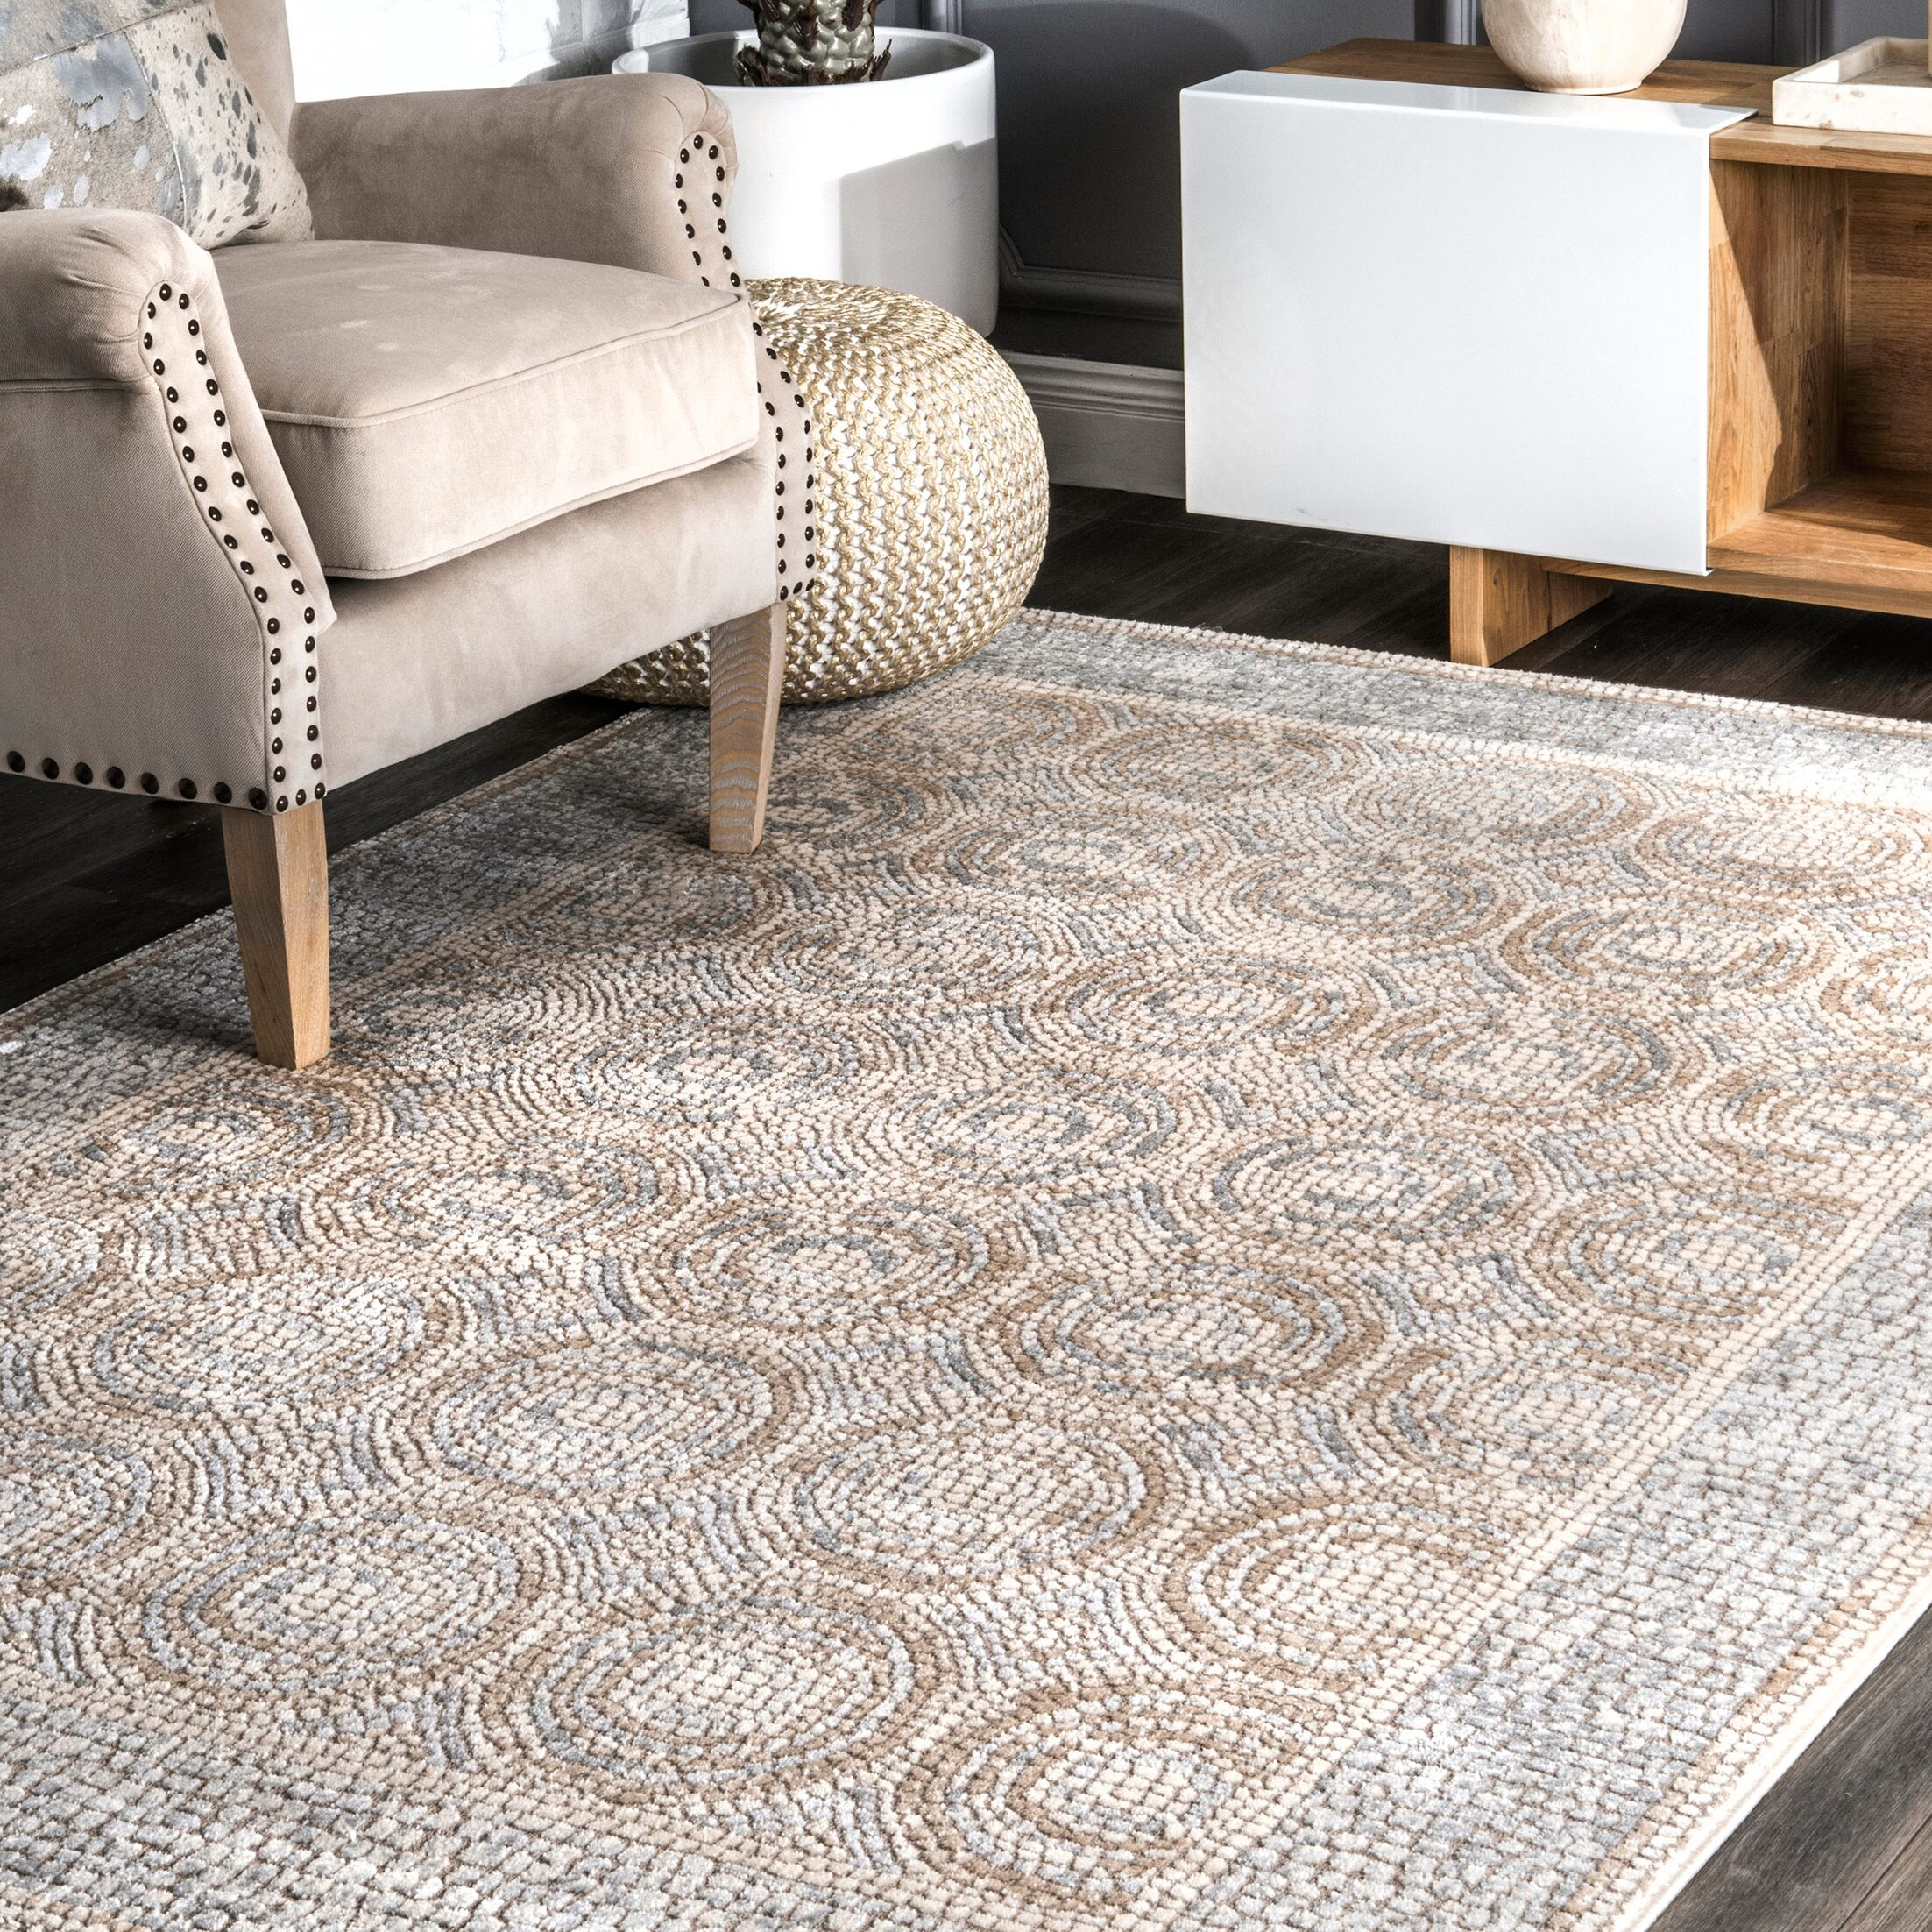 Tazewell Beige Area Rug Rug Size: Rectangle 5' 3